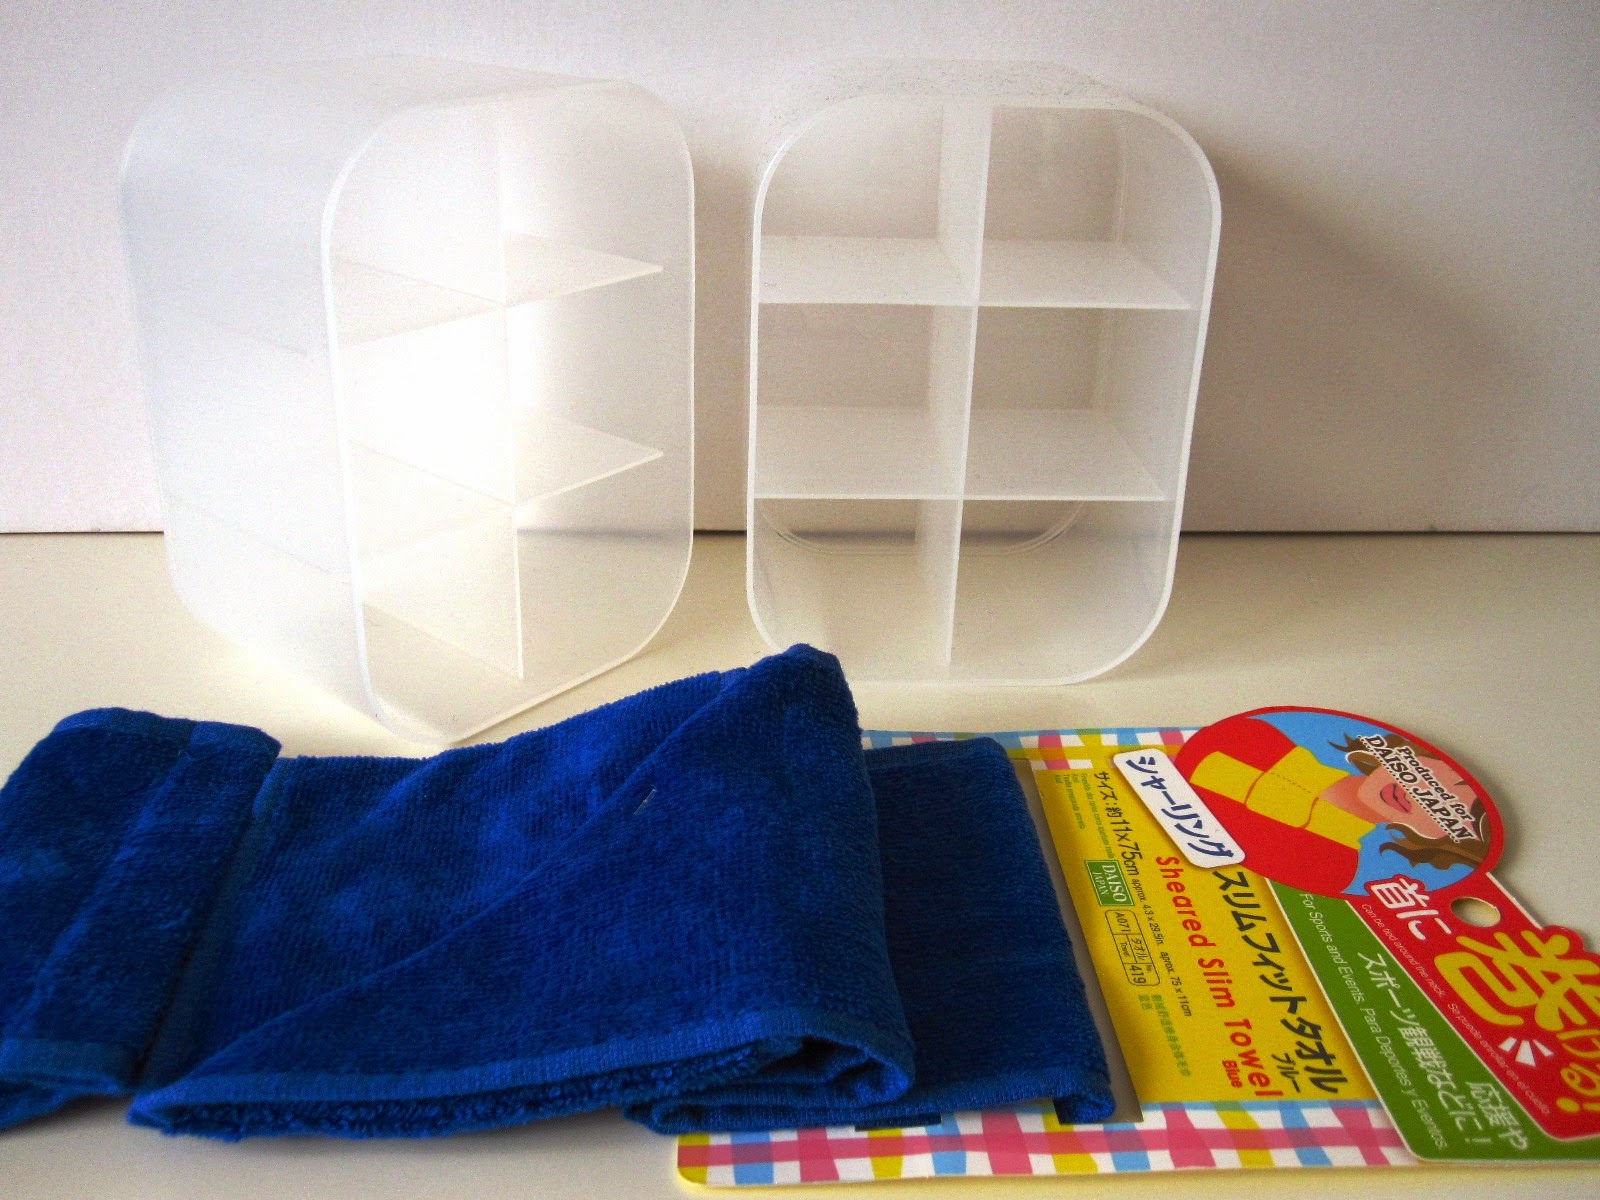 Two opaque plastic storage containers and a blue neck scarf from Daiso.